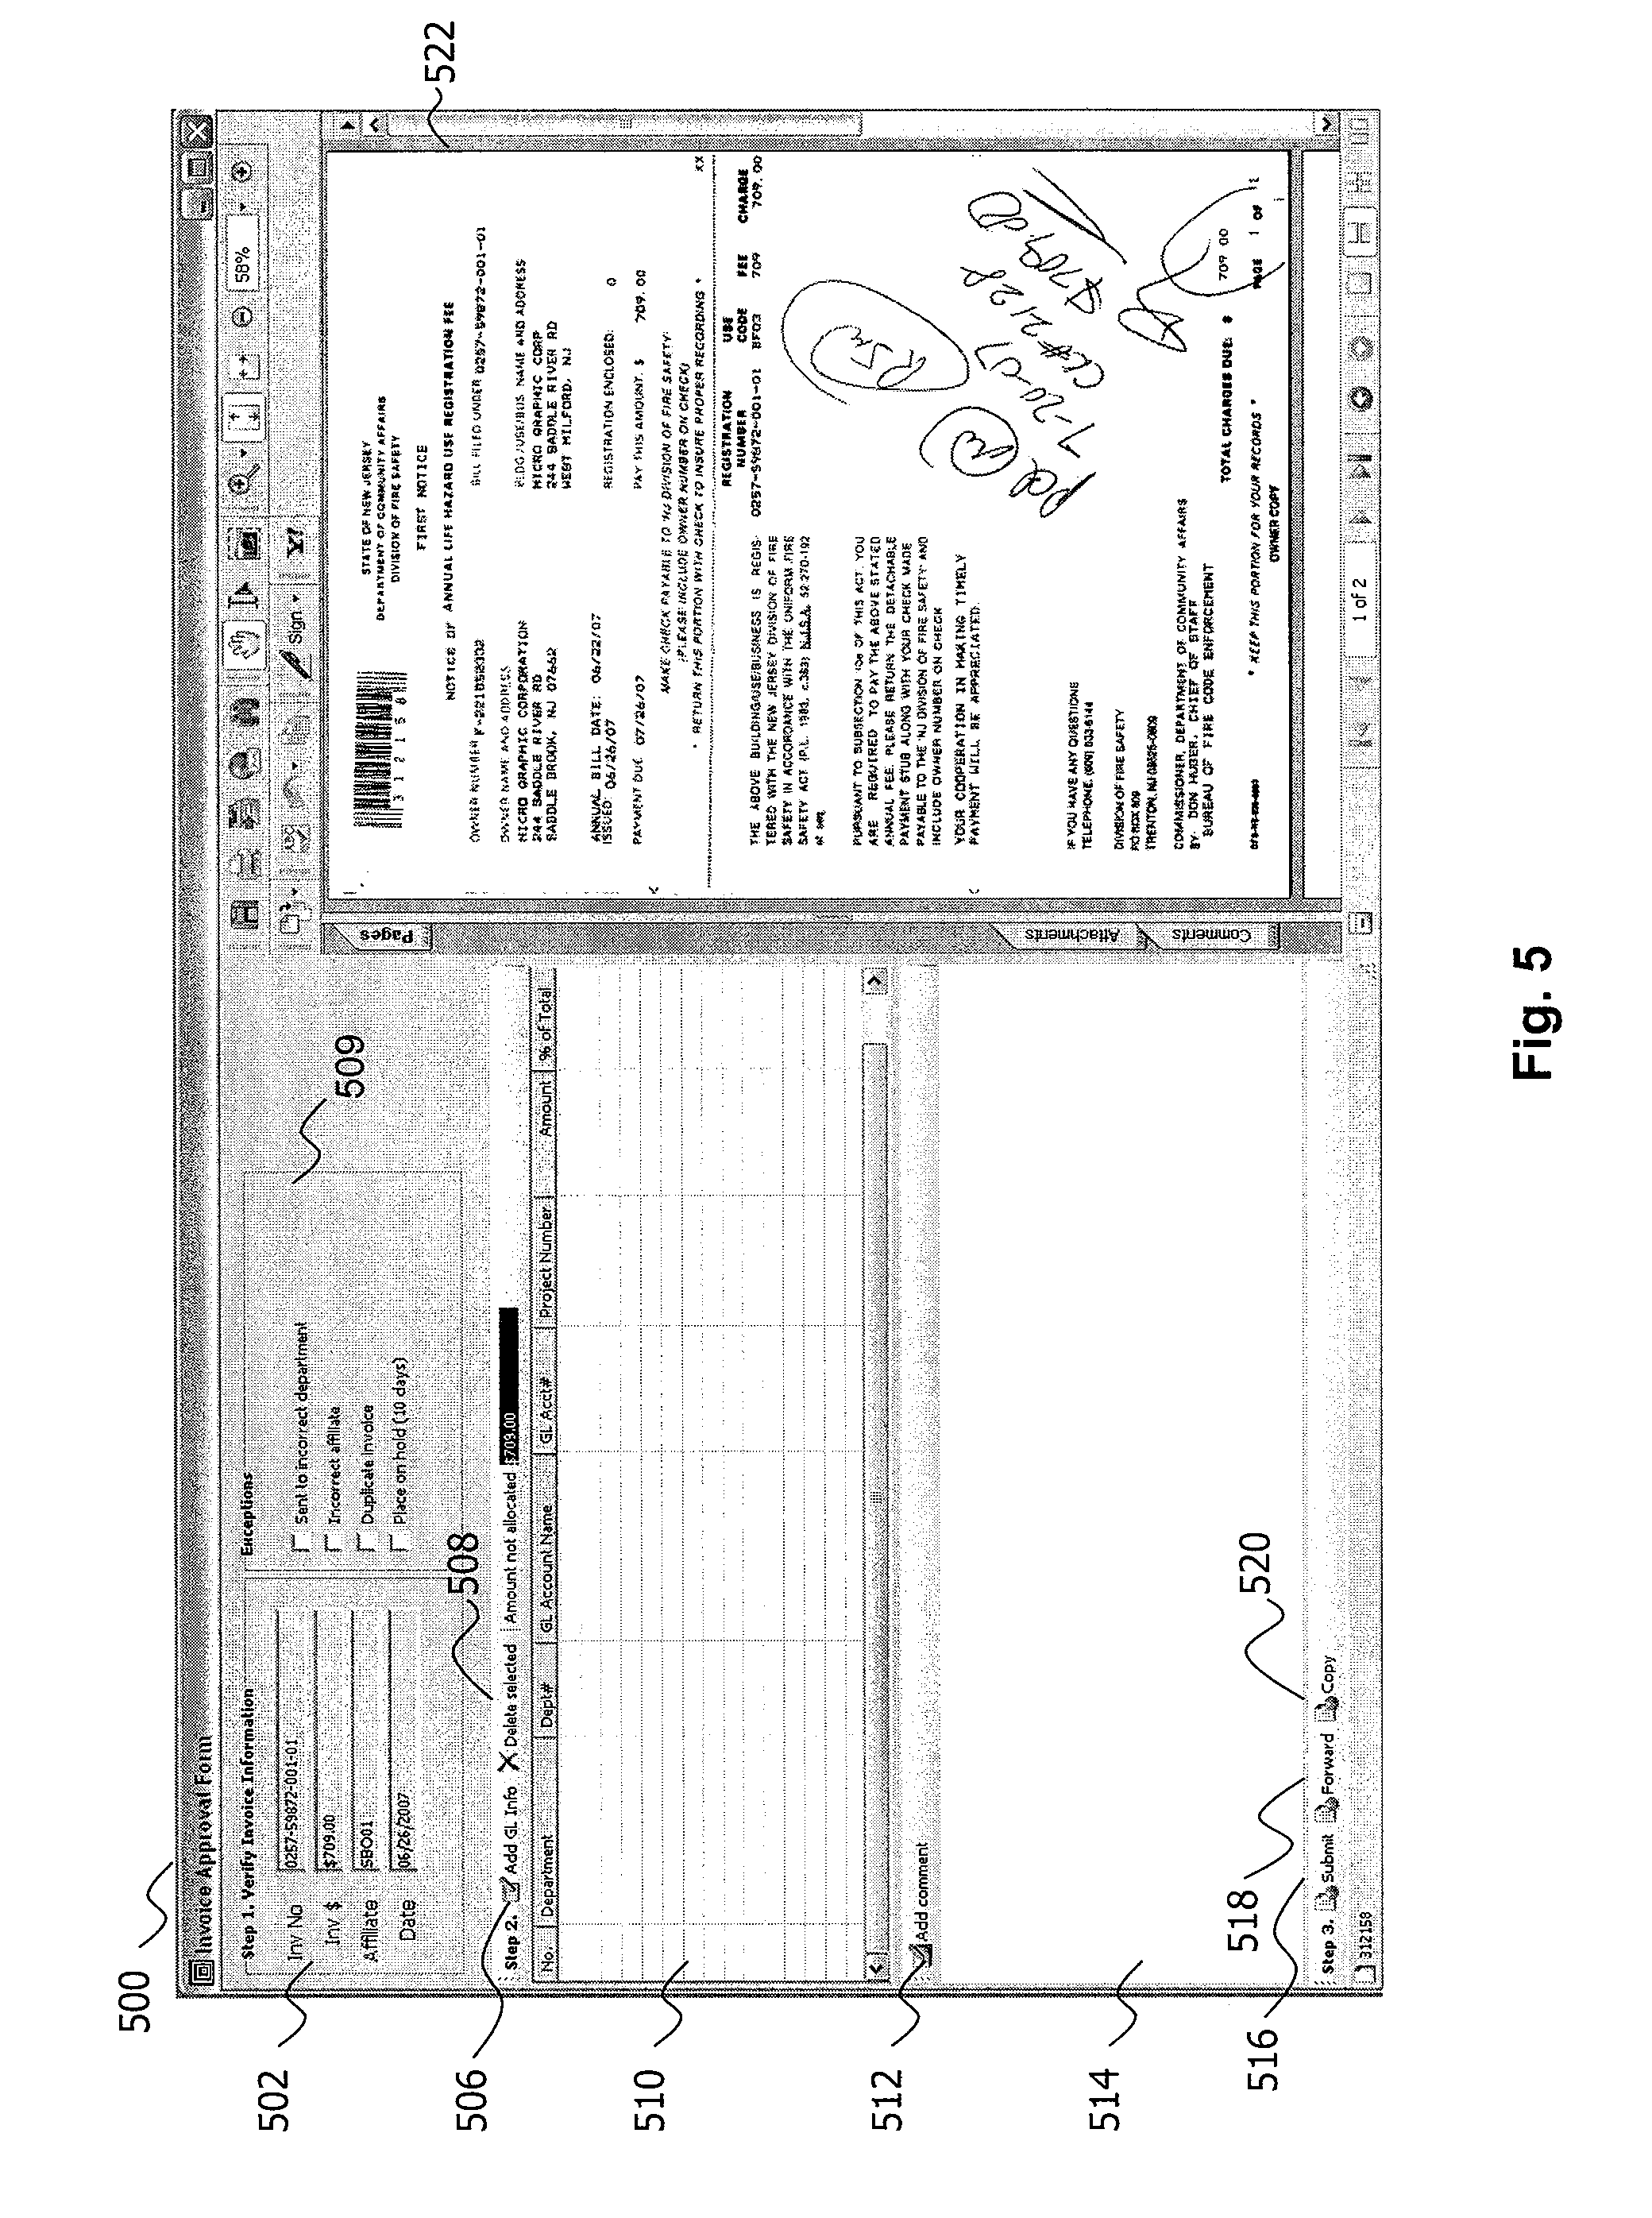 Written Receipt Pdf Patent Us  Automated Invoice Processing Software And  Tenant Receipt Template Pdf with Goods Receipt Form Excel Patent Drawing Mgm Grand Receipt